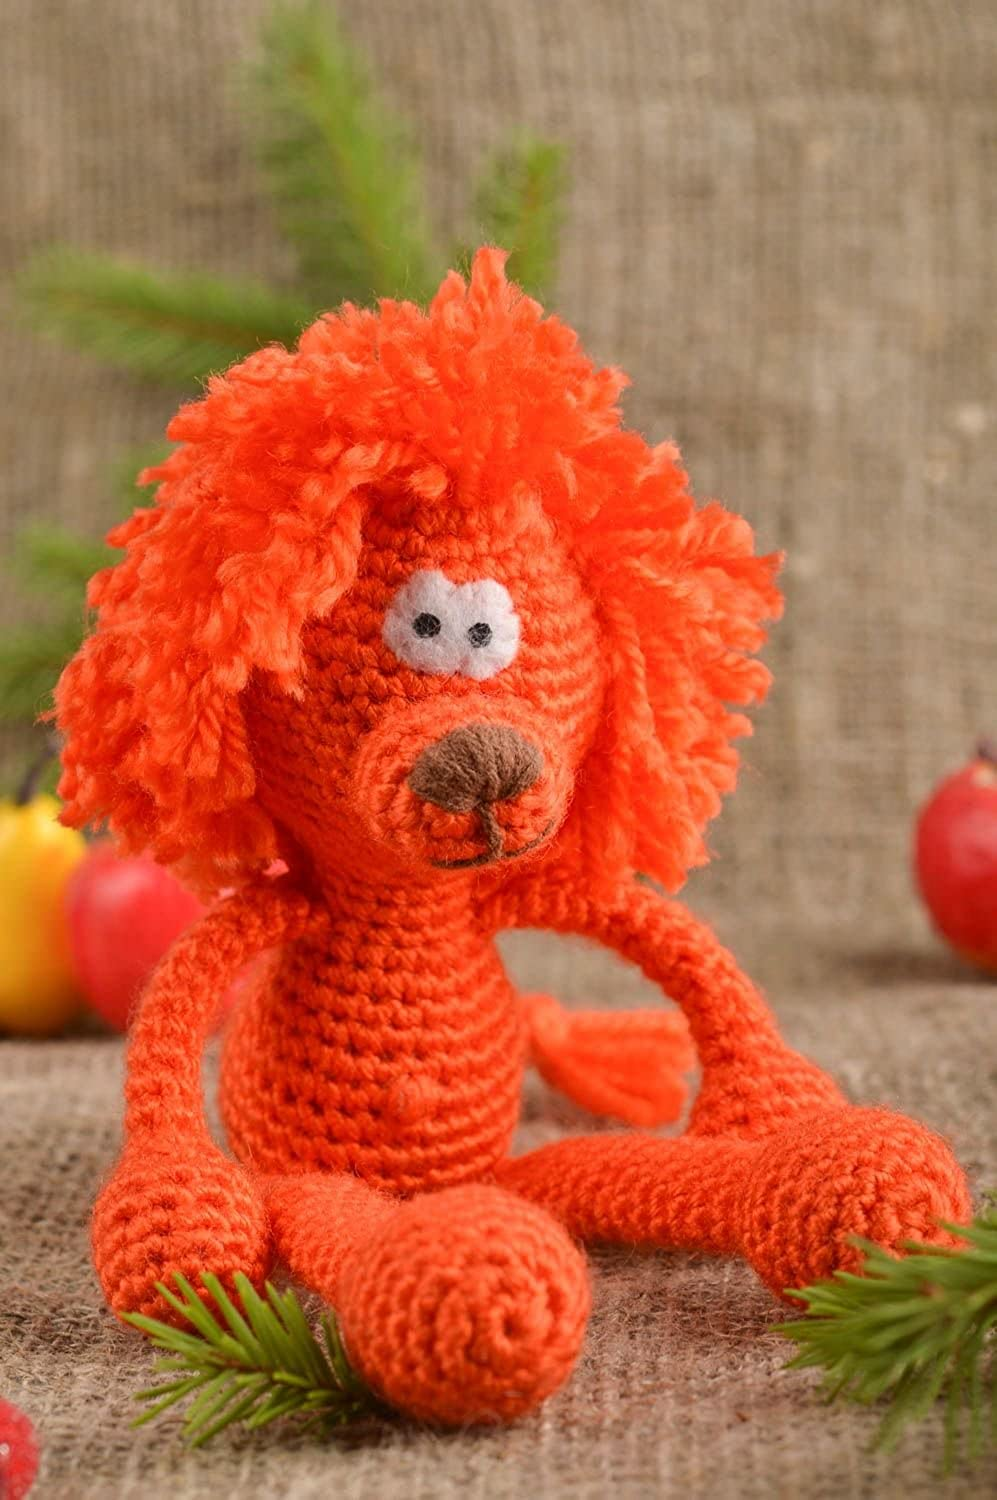 Handmade Crocheted Toy Baby Soft Toy Crocheted Lion Toy Design Crocheted Toys